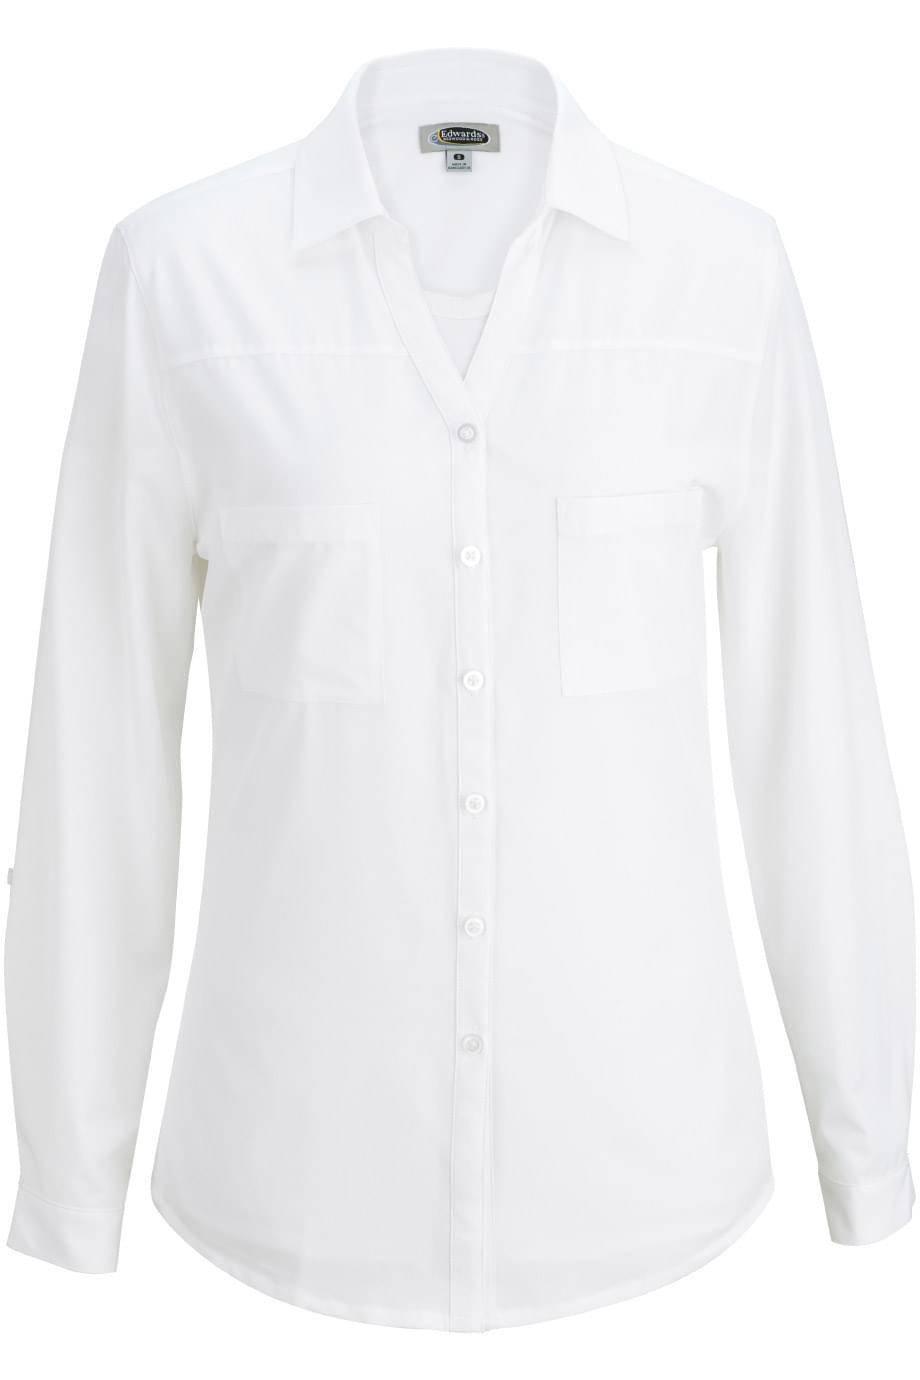 REDWOOD & ROSS® 2-POCKET BLOUSE